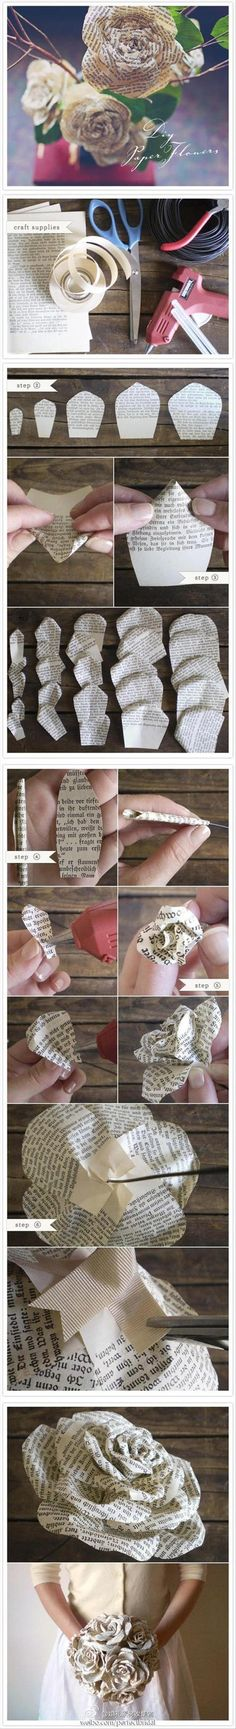 Wedding Craft Ideas...paper flowers. I could make these in any scrapbook paper I want. :)